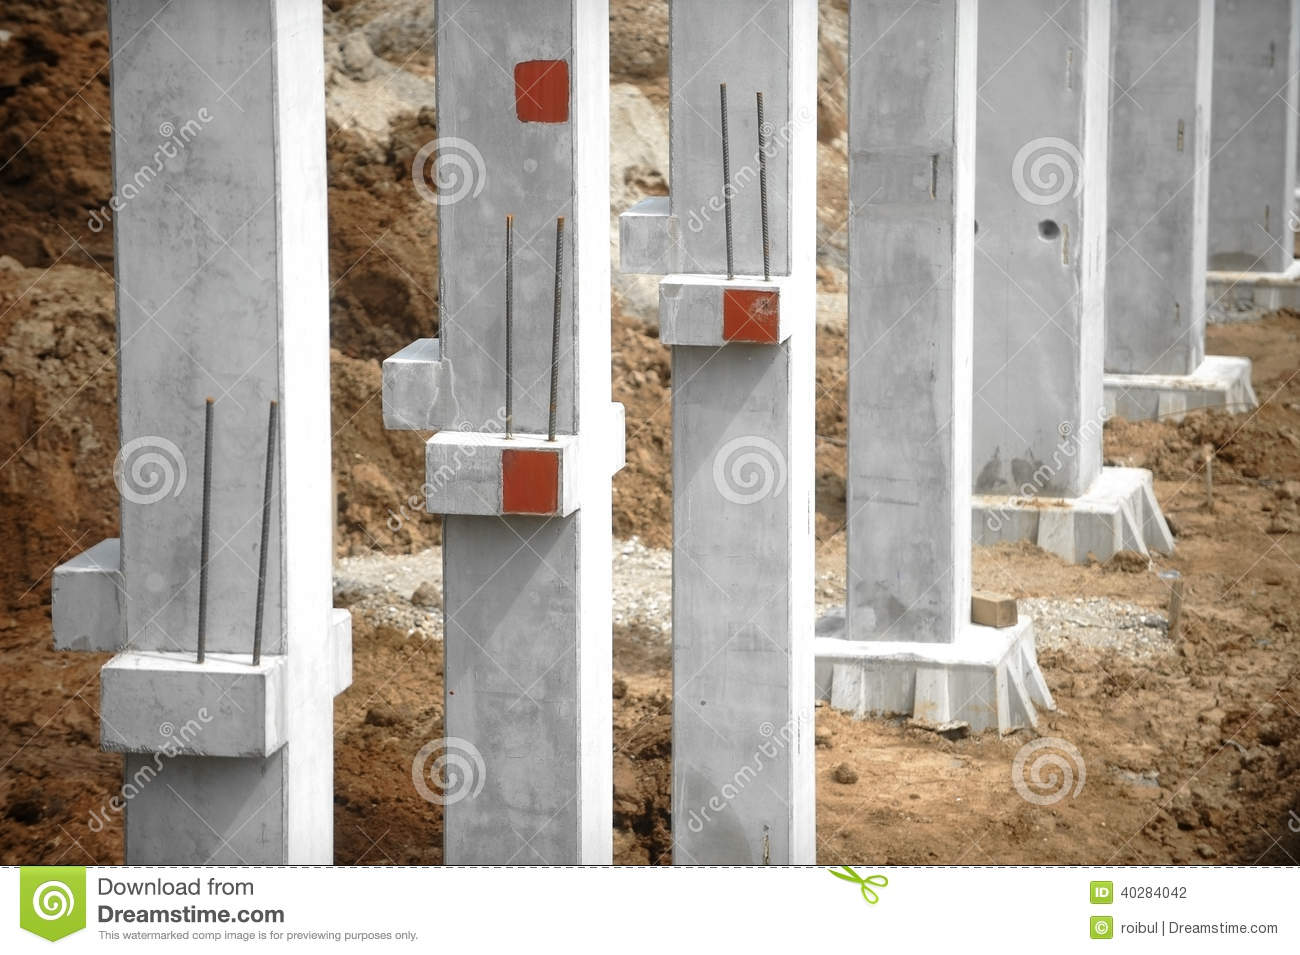 Construction site foundation pillars and columns stock for Concrete pillars for foundation